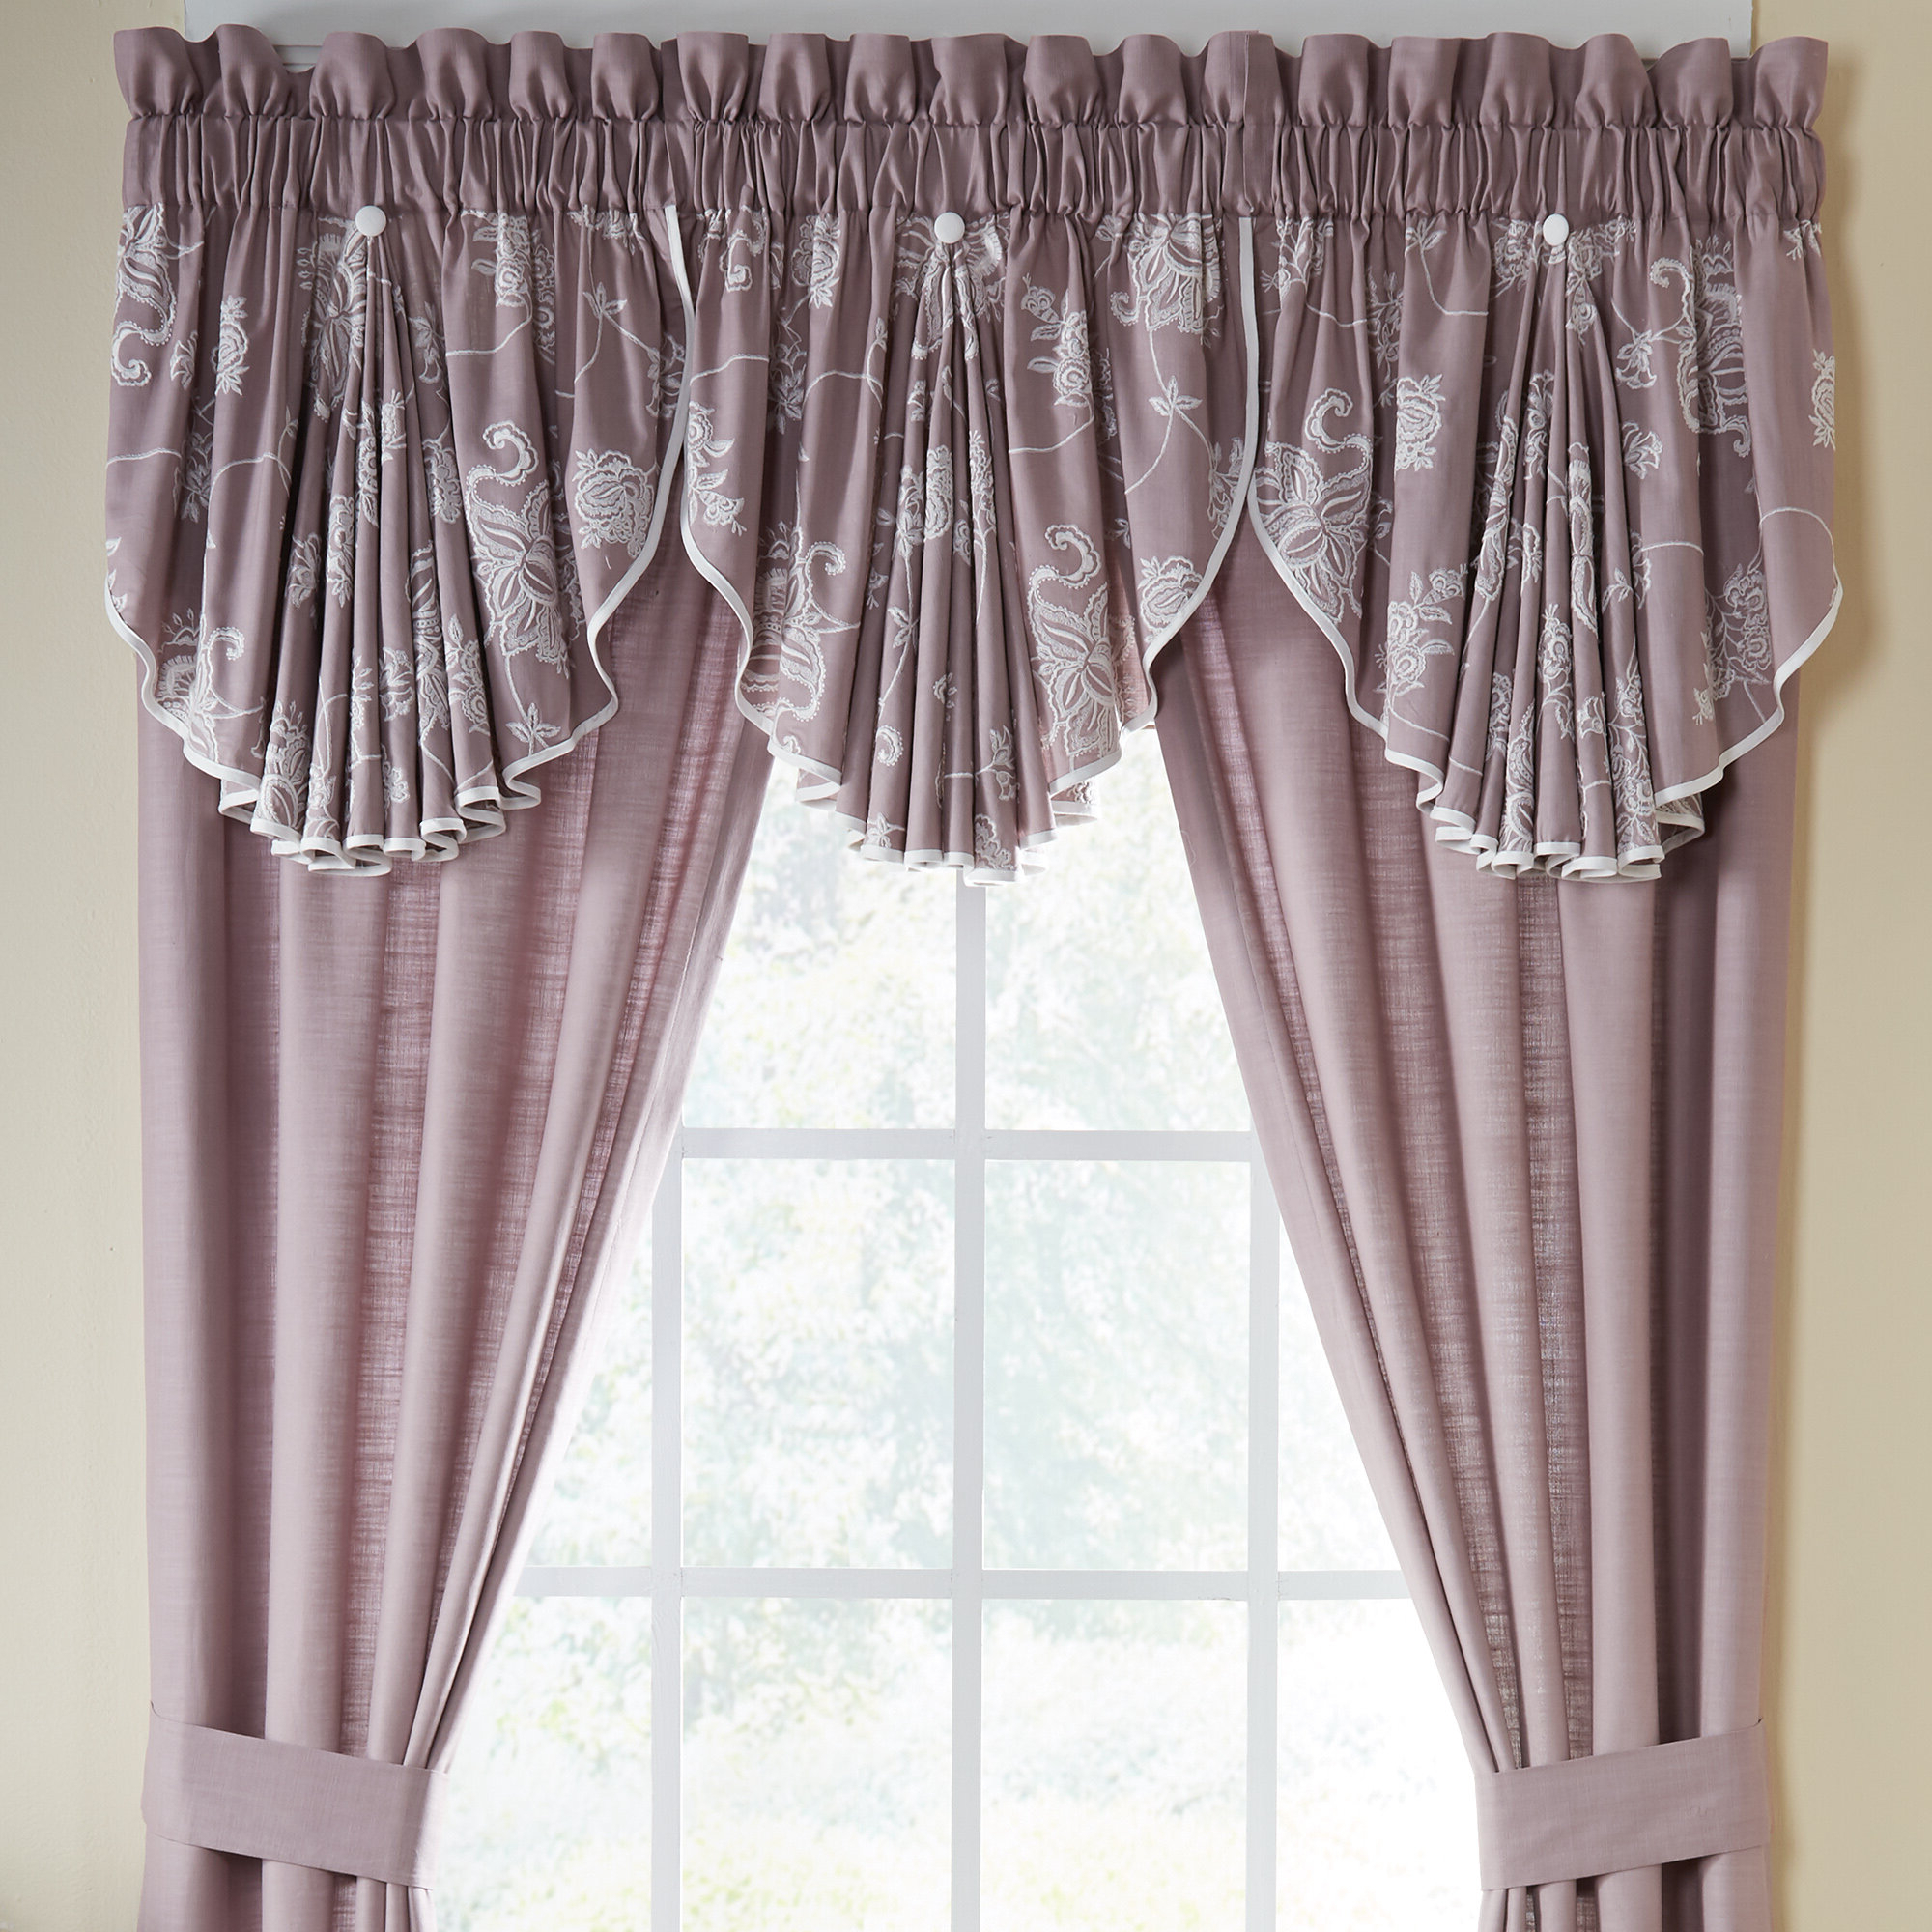 "Liliana Circle 42"" Window Valance Inside Most Up To Date Circle Curtain Valances (View 14 of 20)"